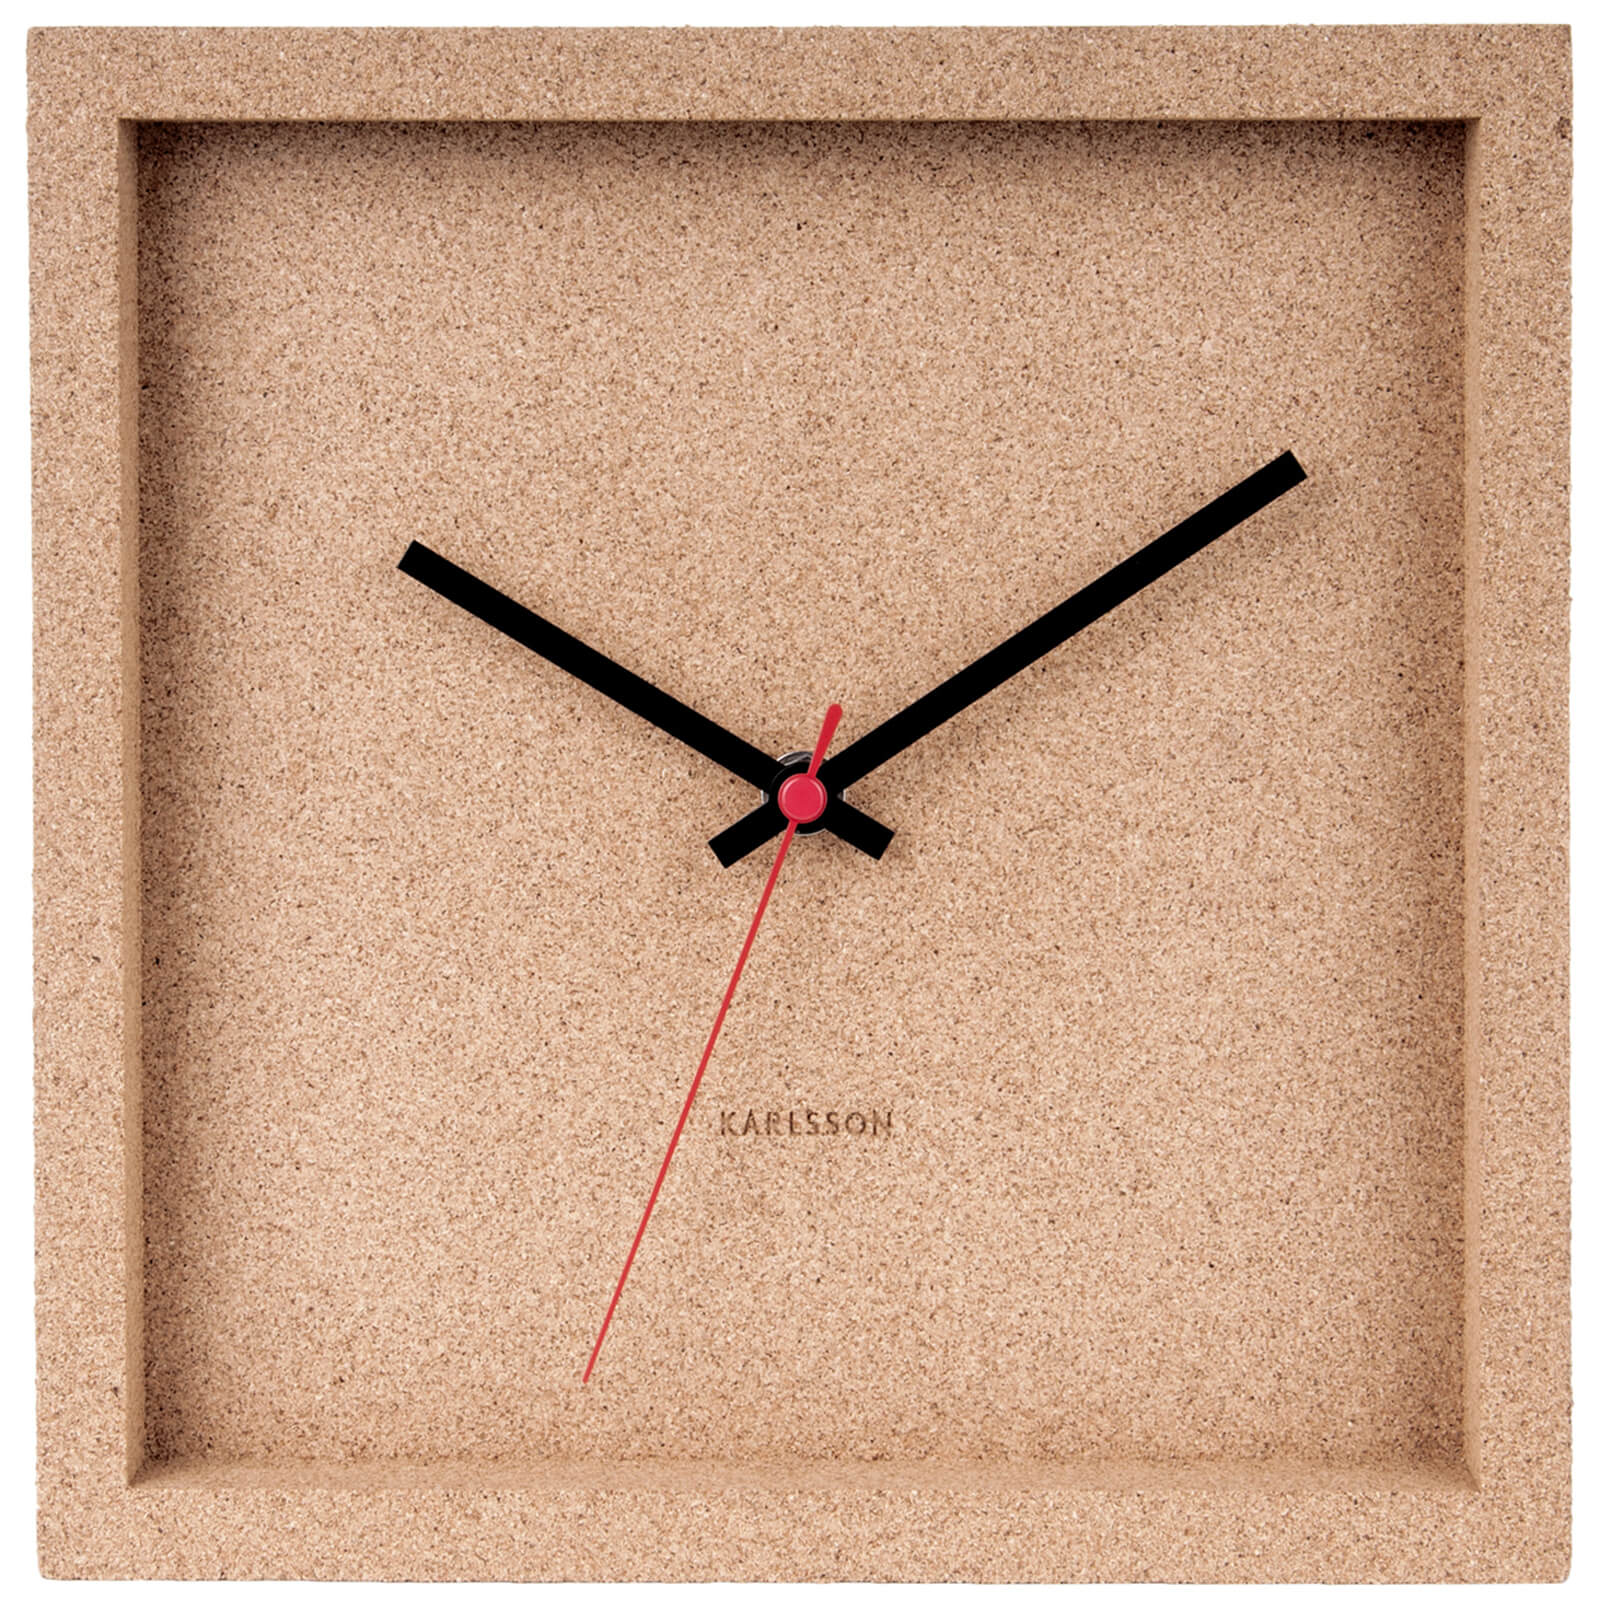 Karlsson Franky Wall Clock - Cork